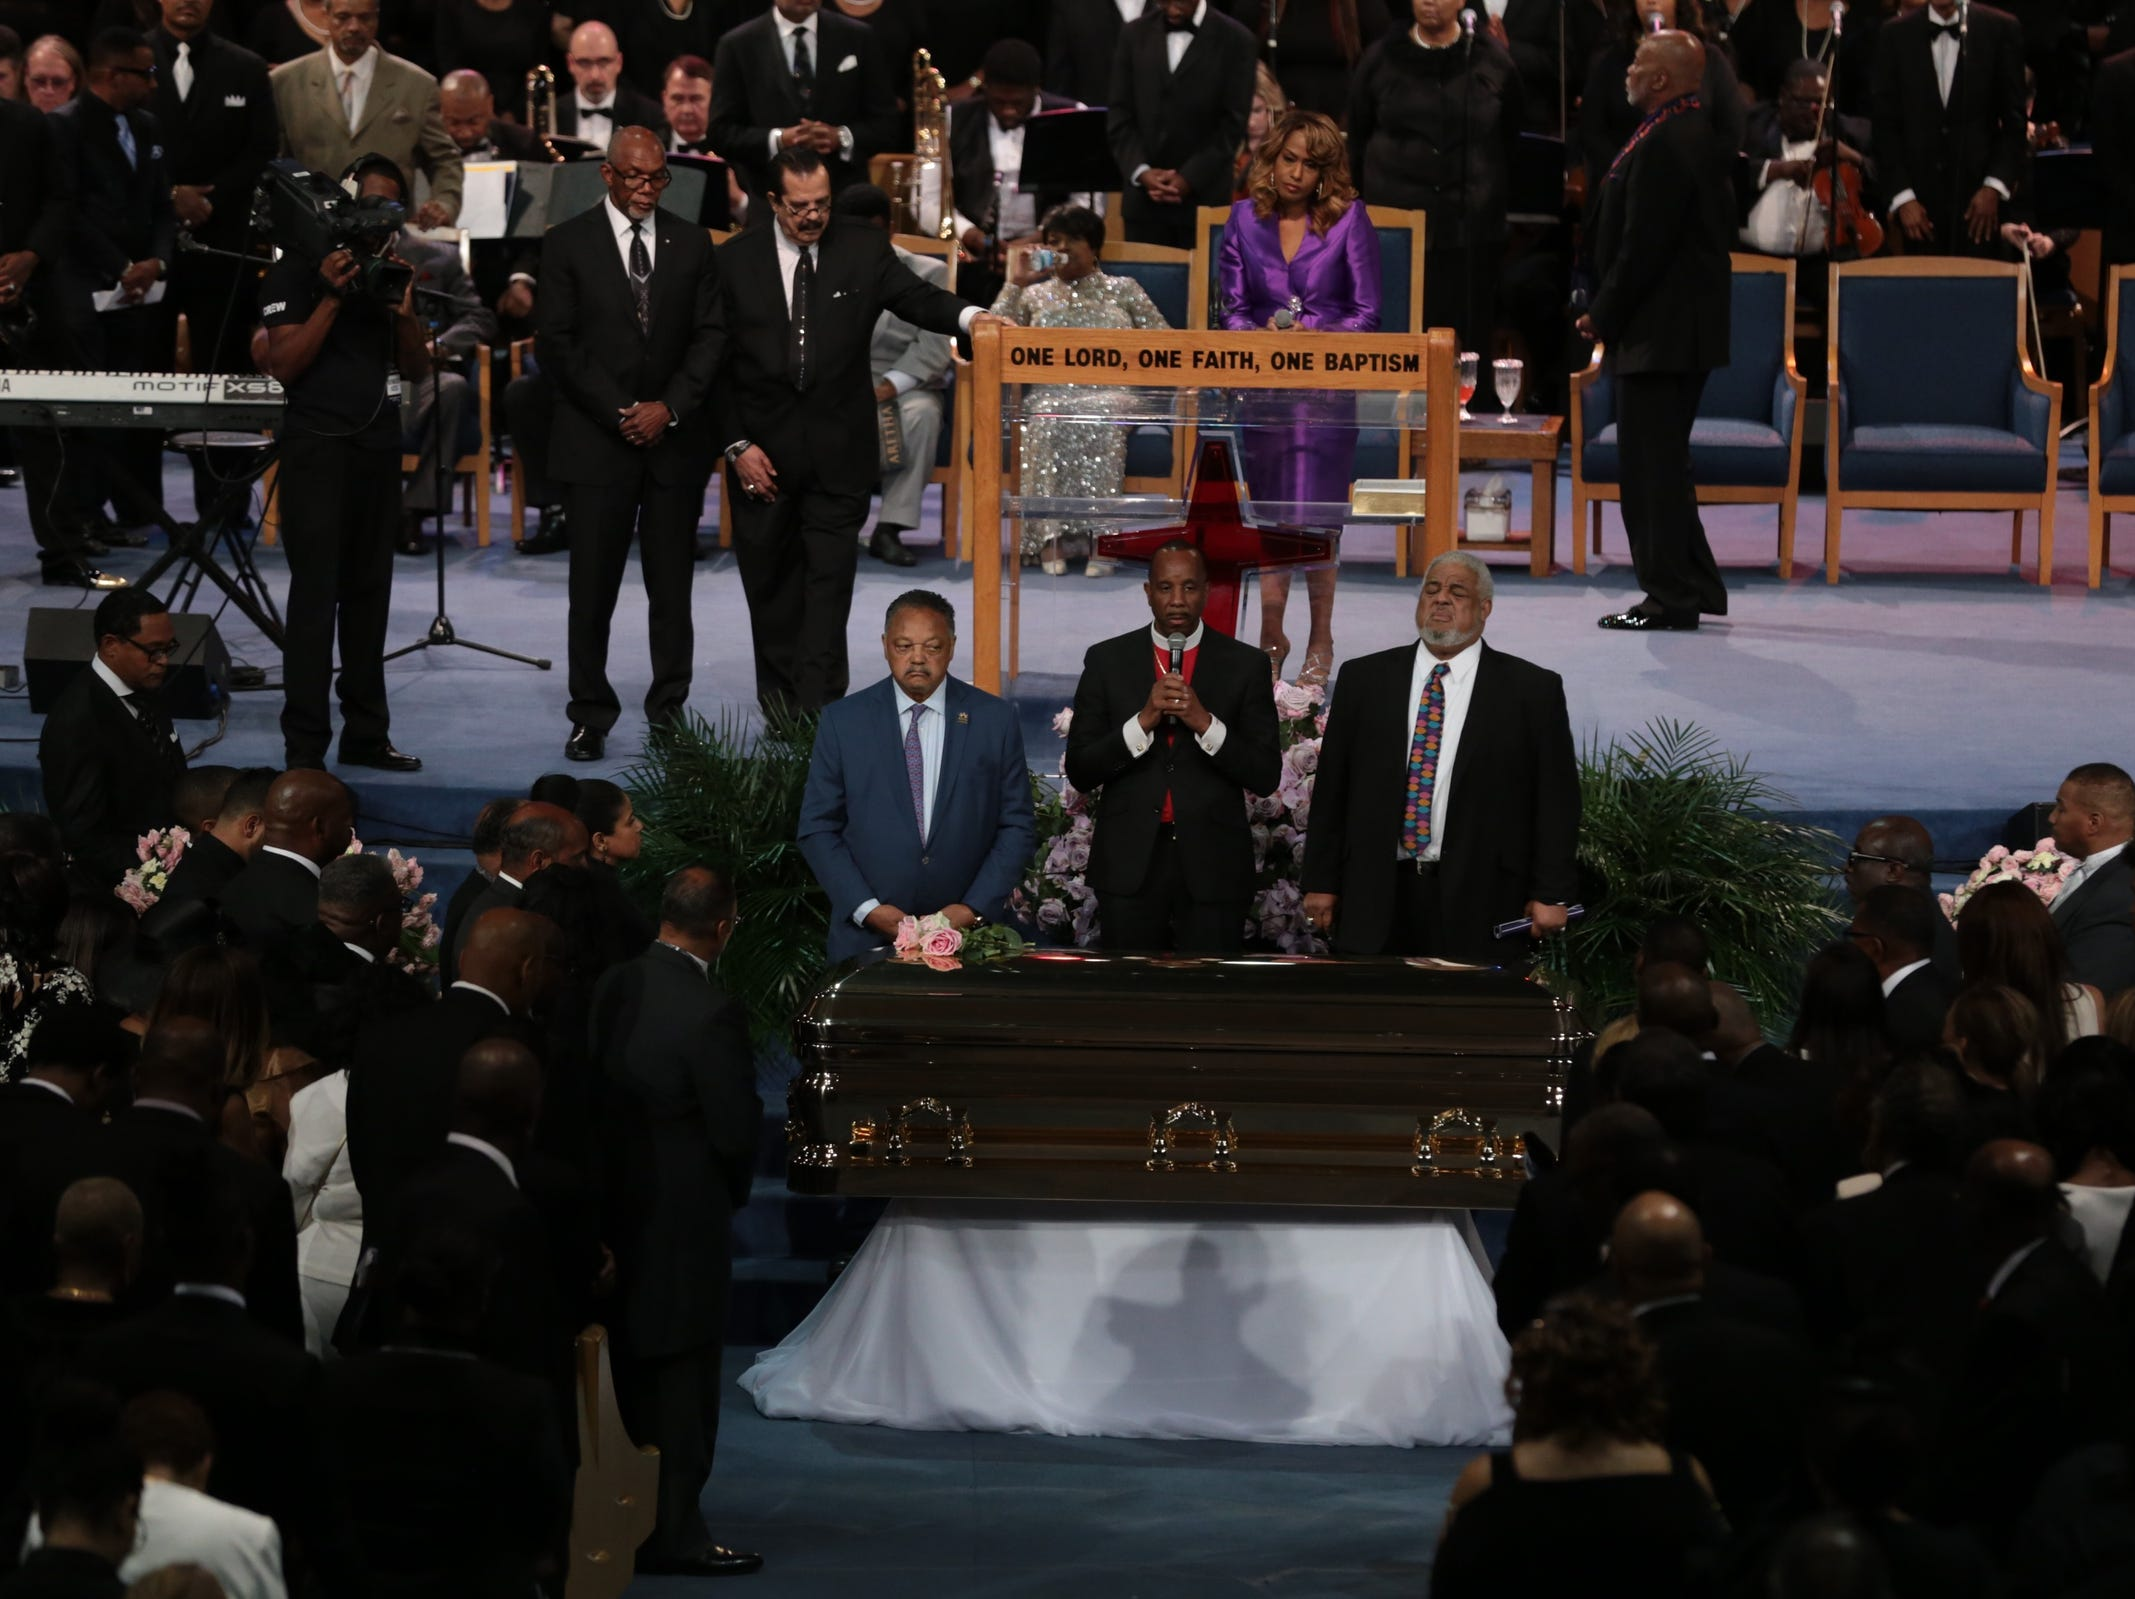 Rev. Jesse Jackson, Bishop Charles Ellis III and Rev.  Robert  Smith Jr. stand next to the casket for Aretha Franklin during the funeral for the late Aretha Franklin at Greater Grace Temple in Detroit on Friday, August 31, 2018.